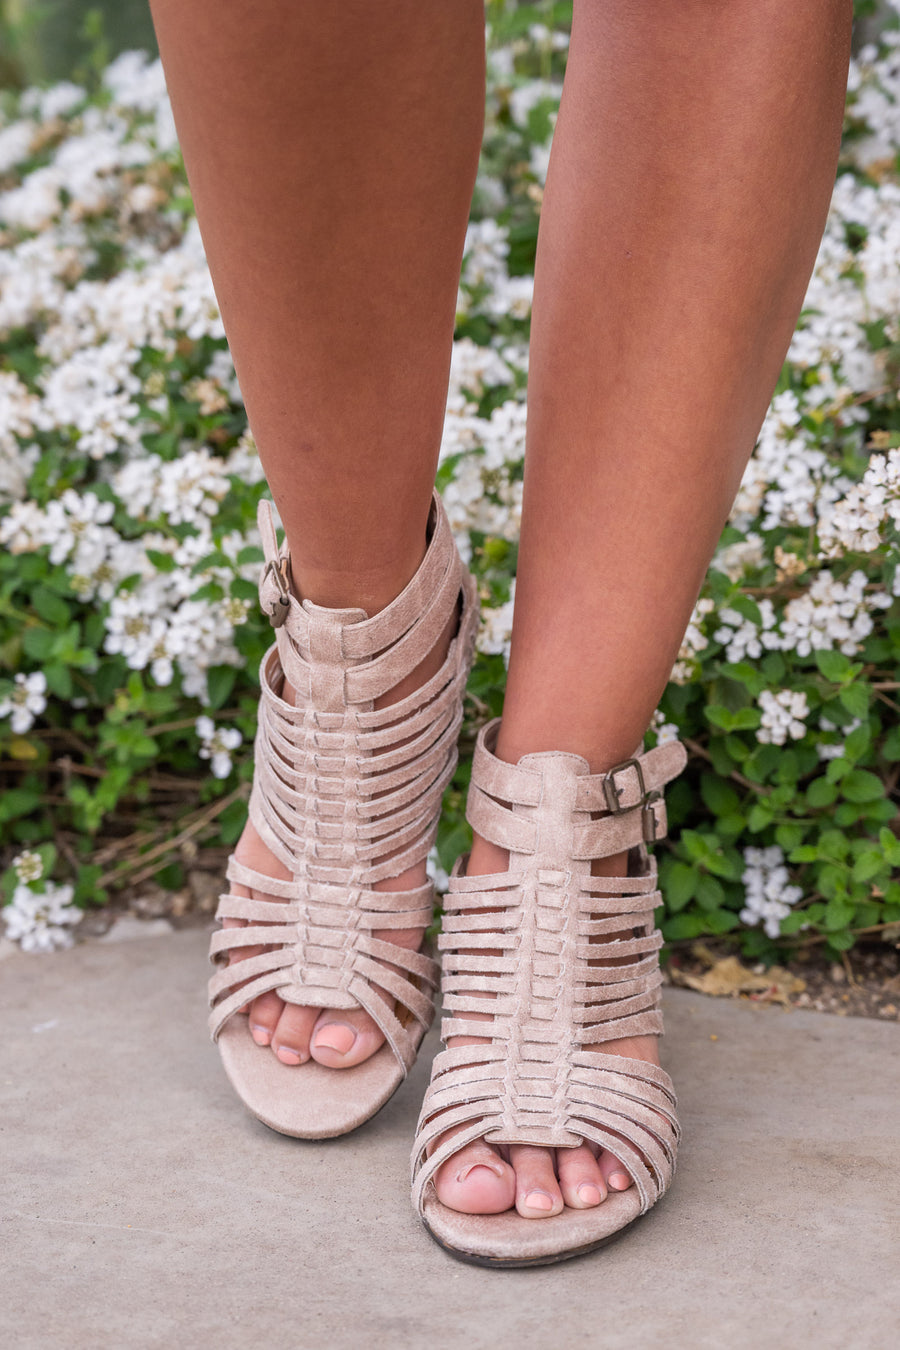 Teagan Heeled Sandals - cream strappy heeled sandals, Closet Candy Boutique 1